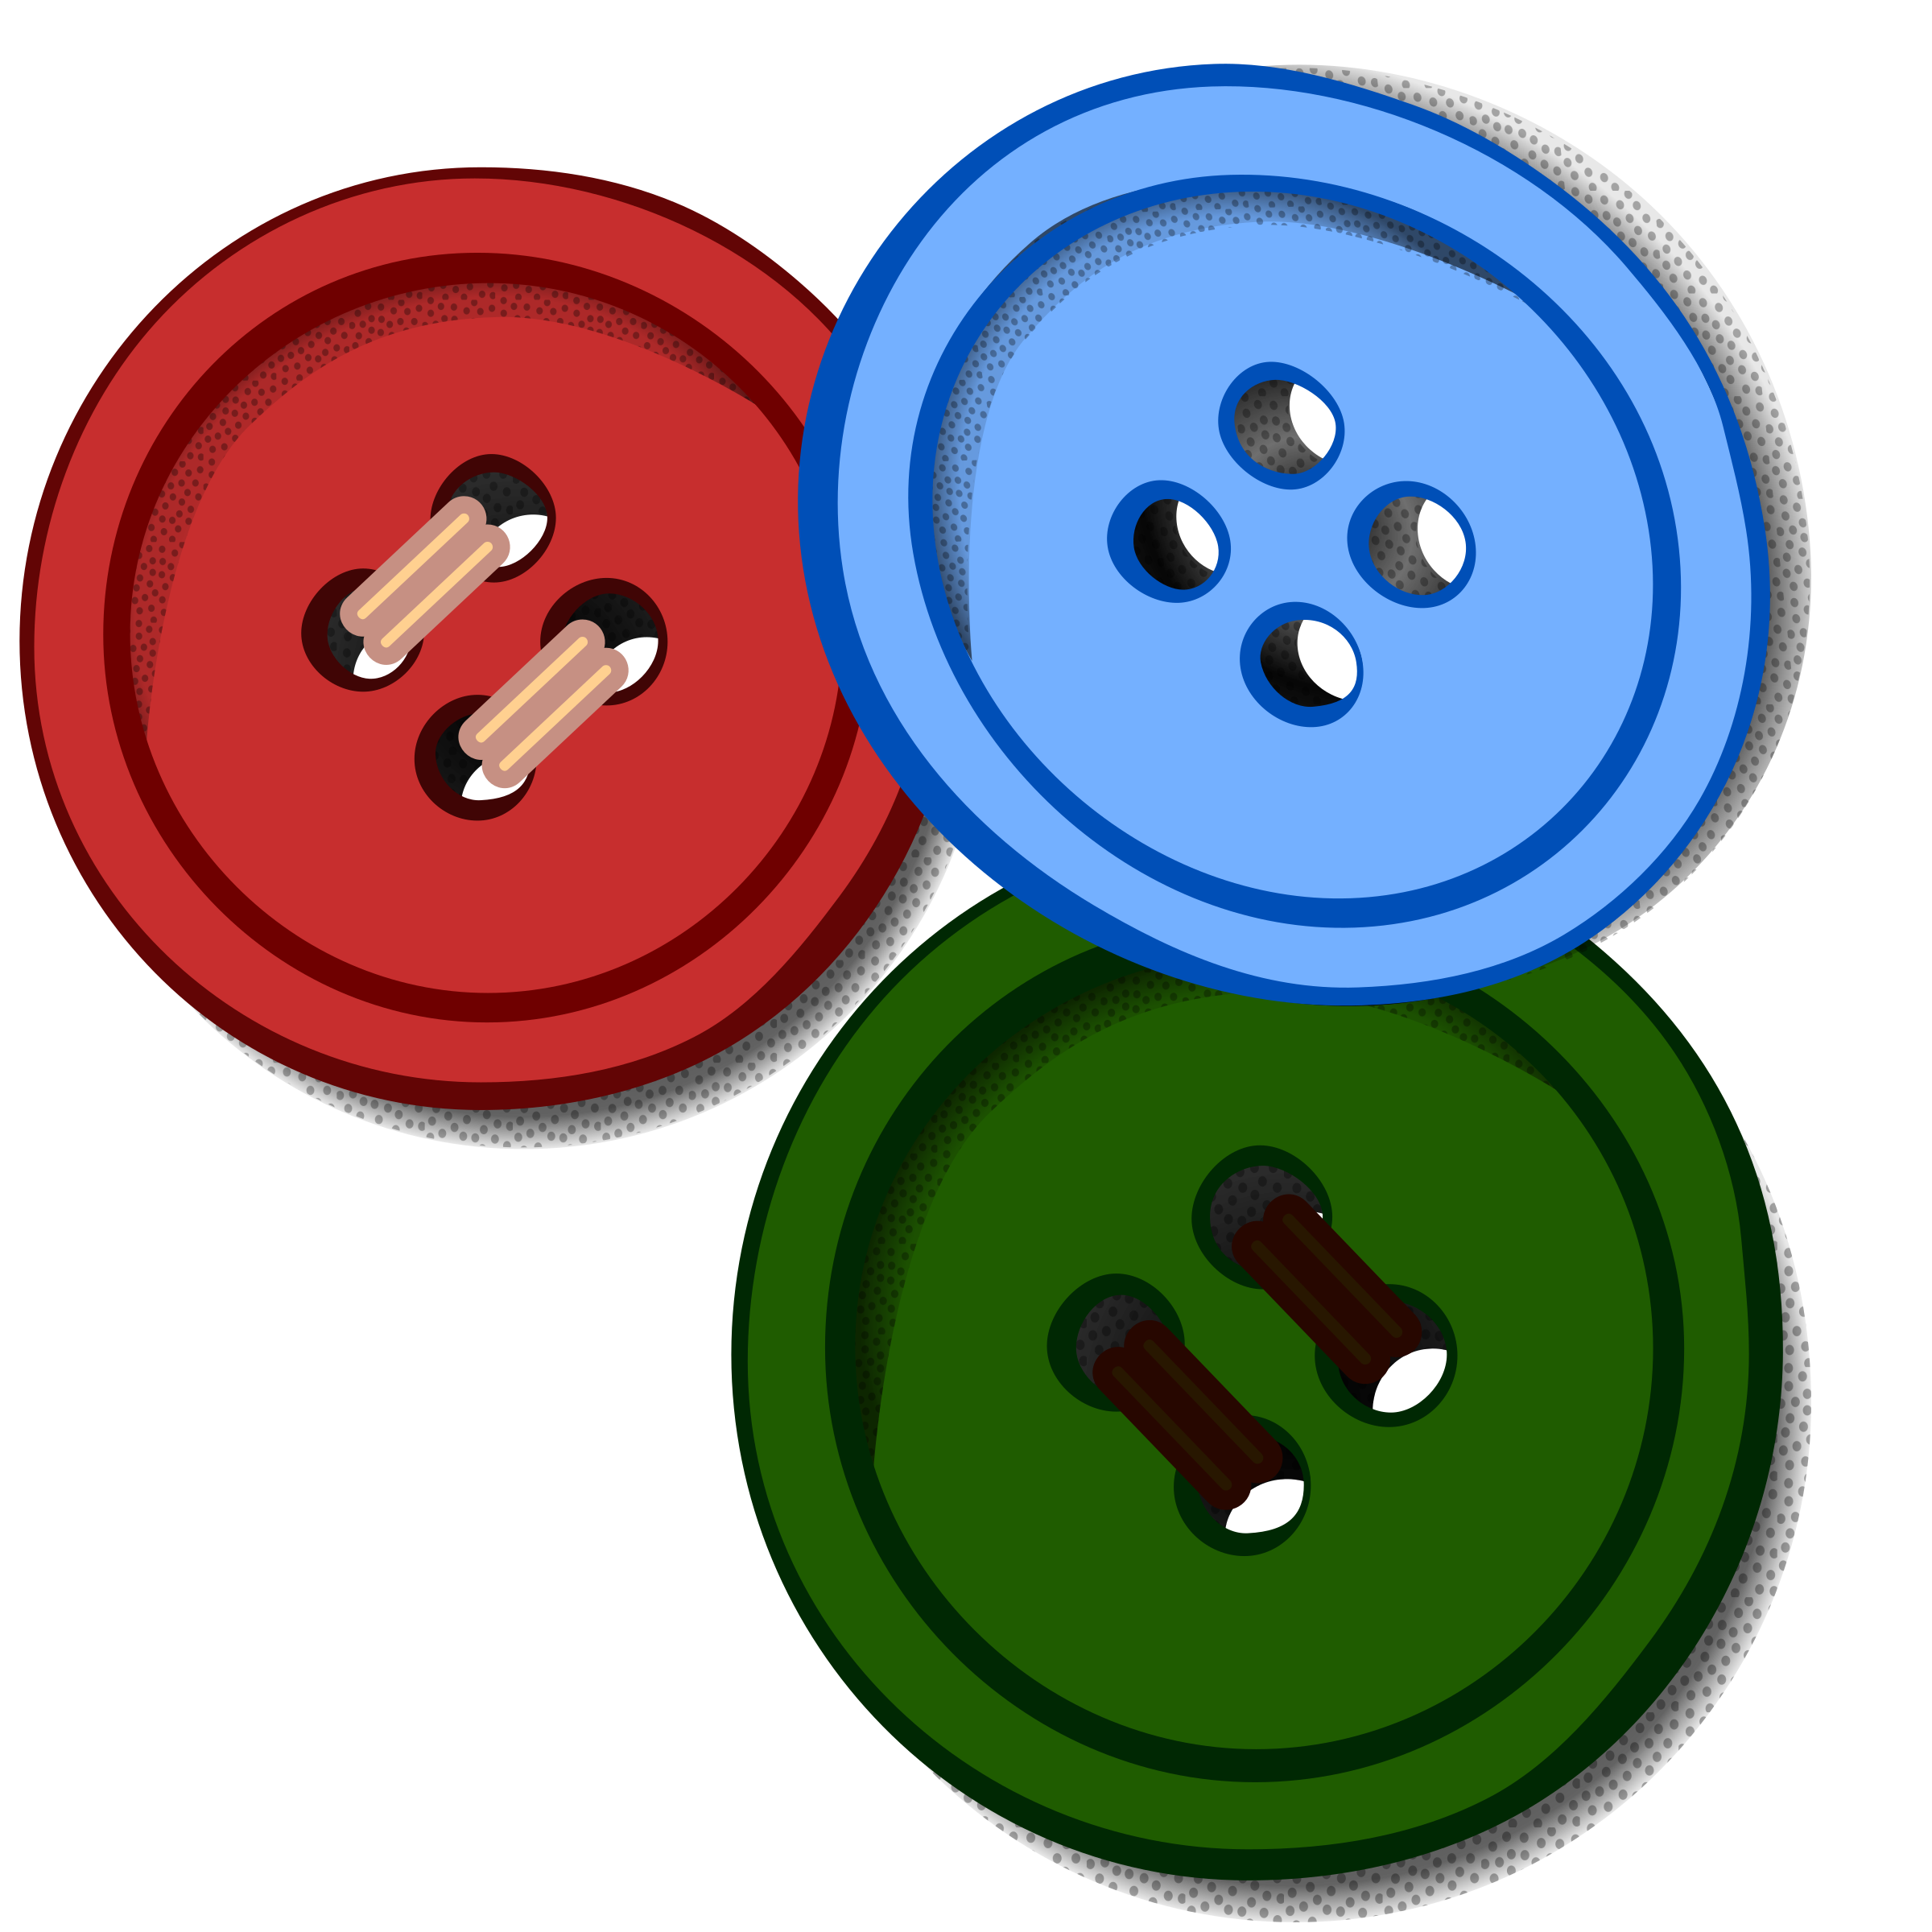 Colored Buttons vector files image - Free stock photo ...